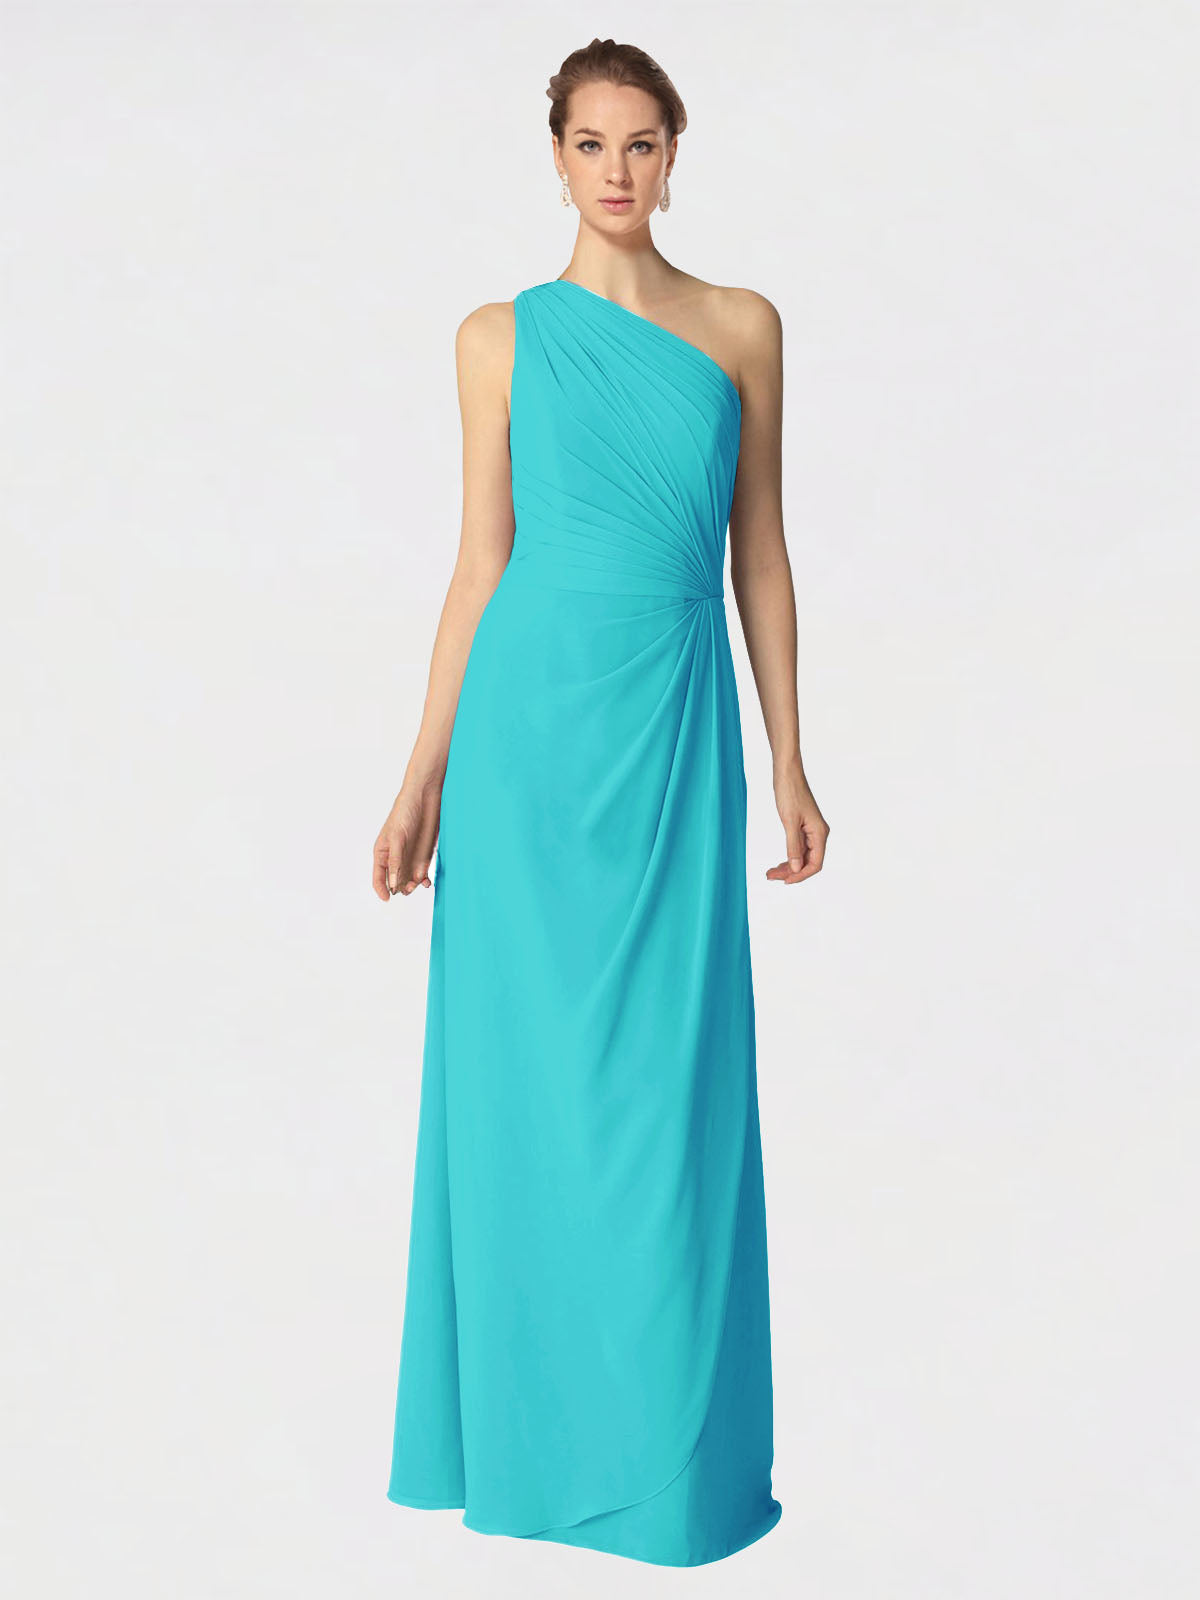 Long A-Line One Shoulder Sleeveless Aqua Chiffon Bridesmaid Dress Aurora